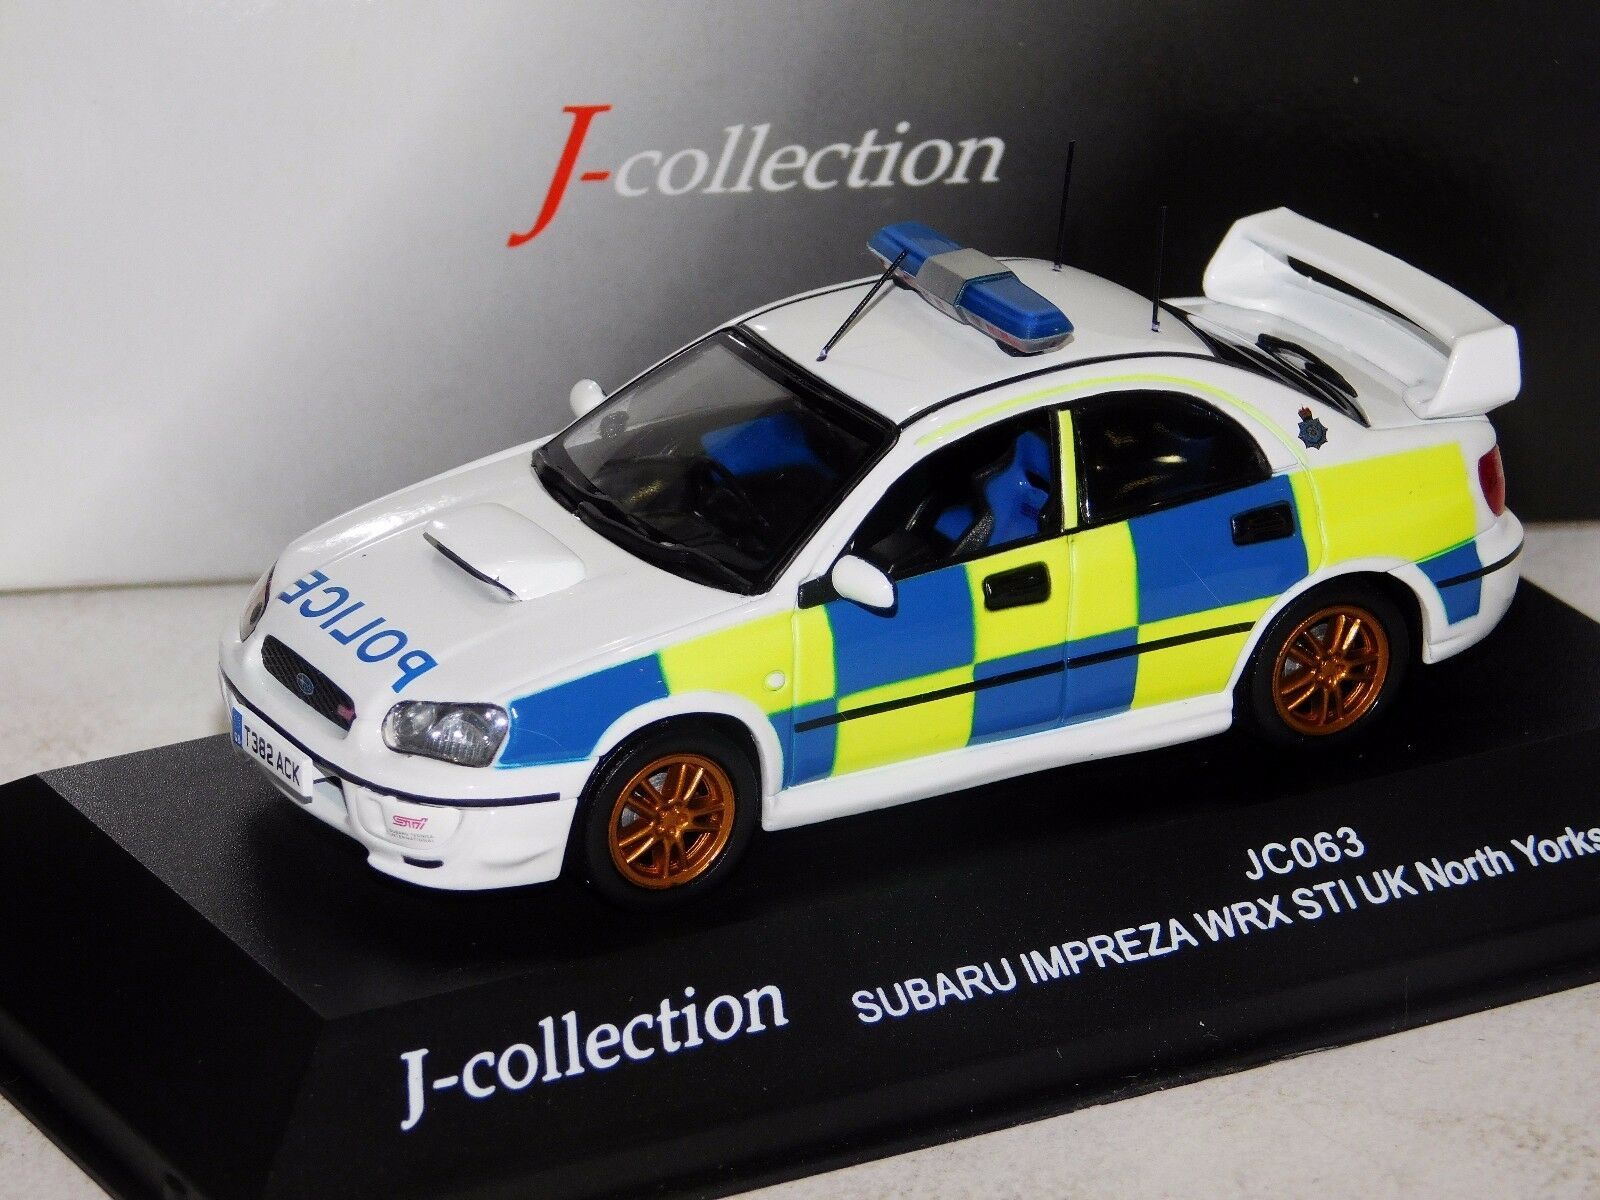 Subaru Impreza WRX STI North Yorkshire policía J Collection JC063 1 43